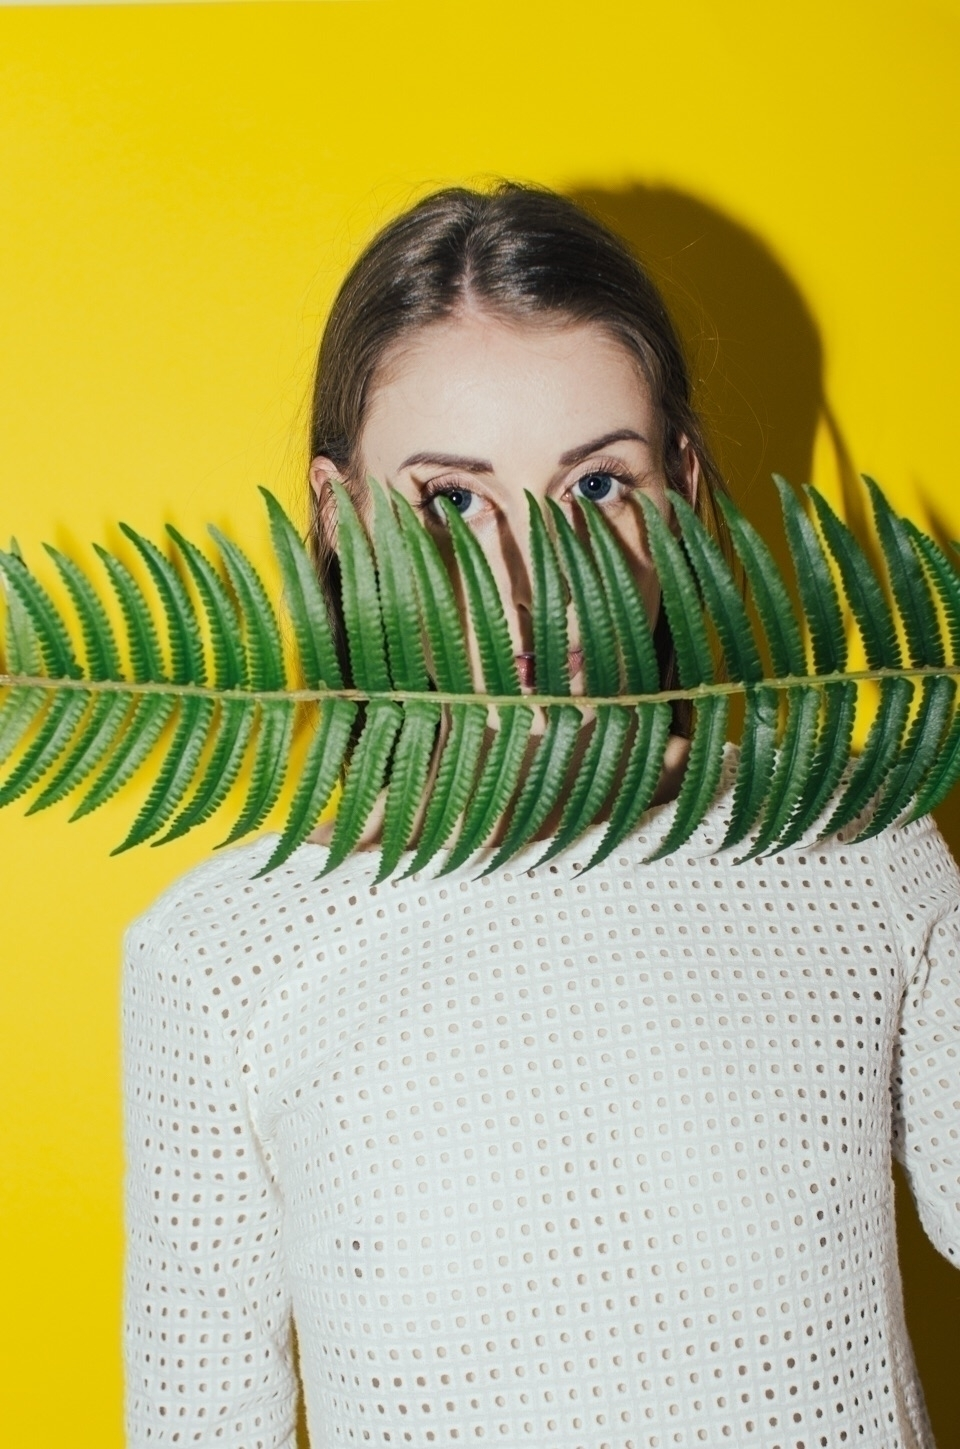 yellow, fashion, plants, leaf - corinnn | ello